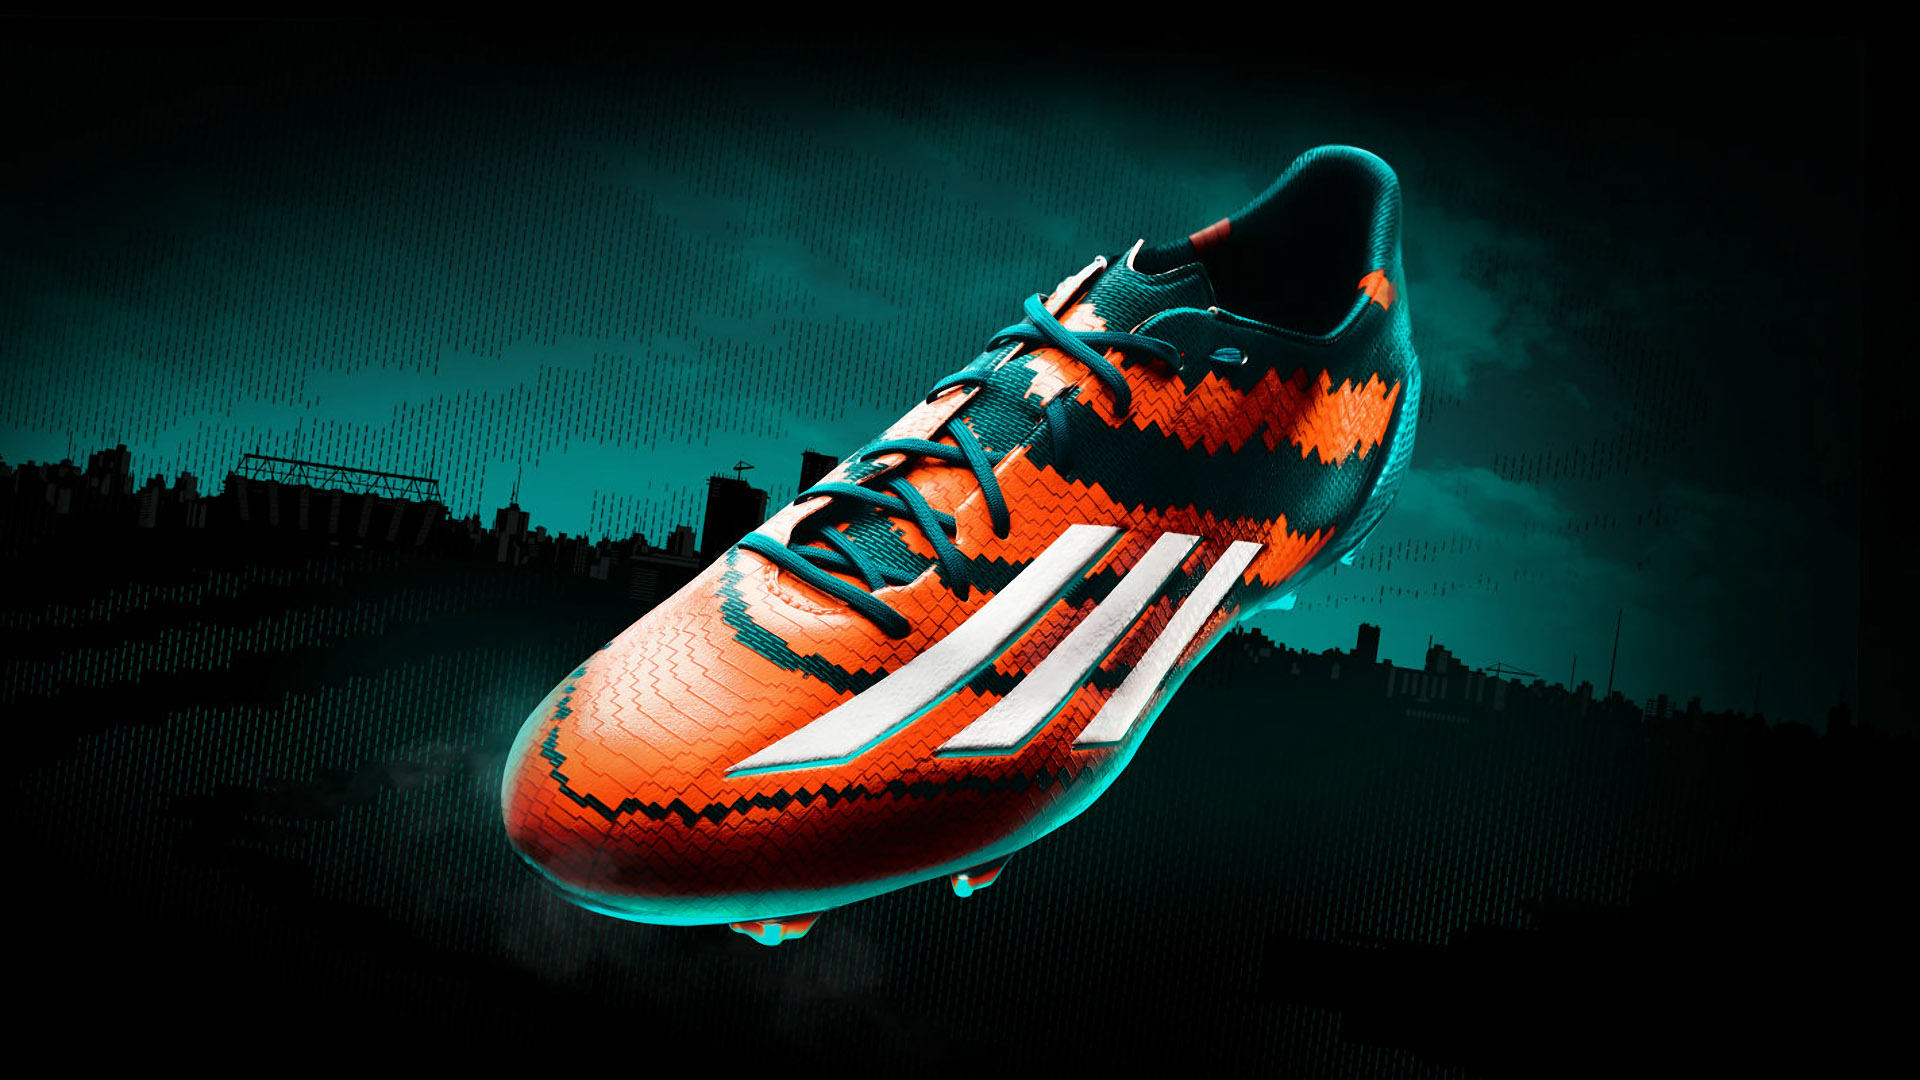 Adidas Football Wallpaper 2015 2 1920x1080